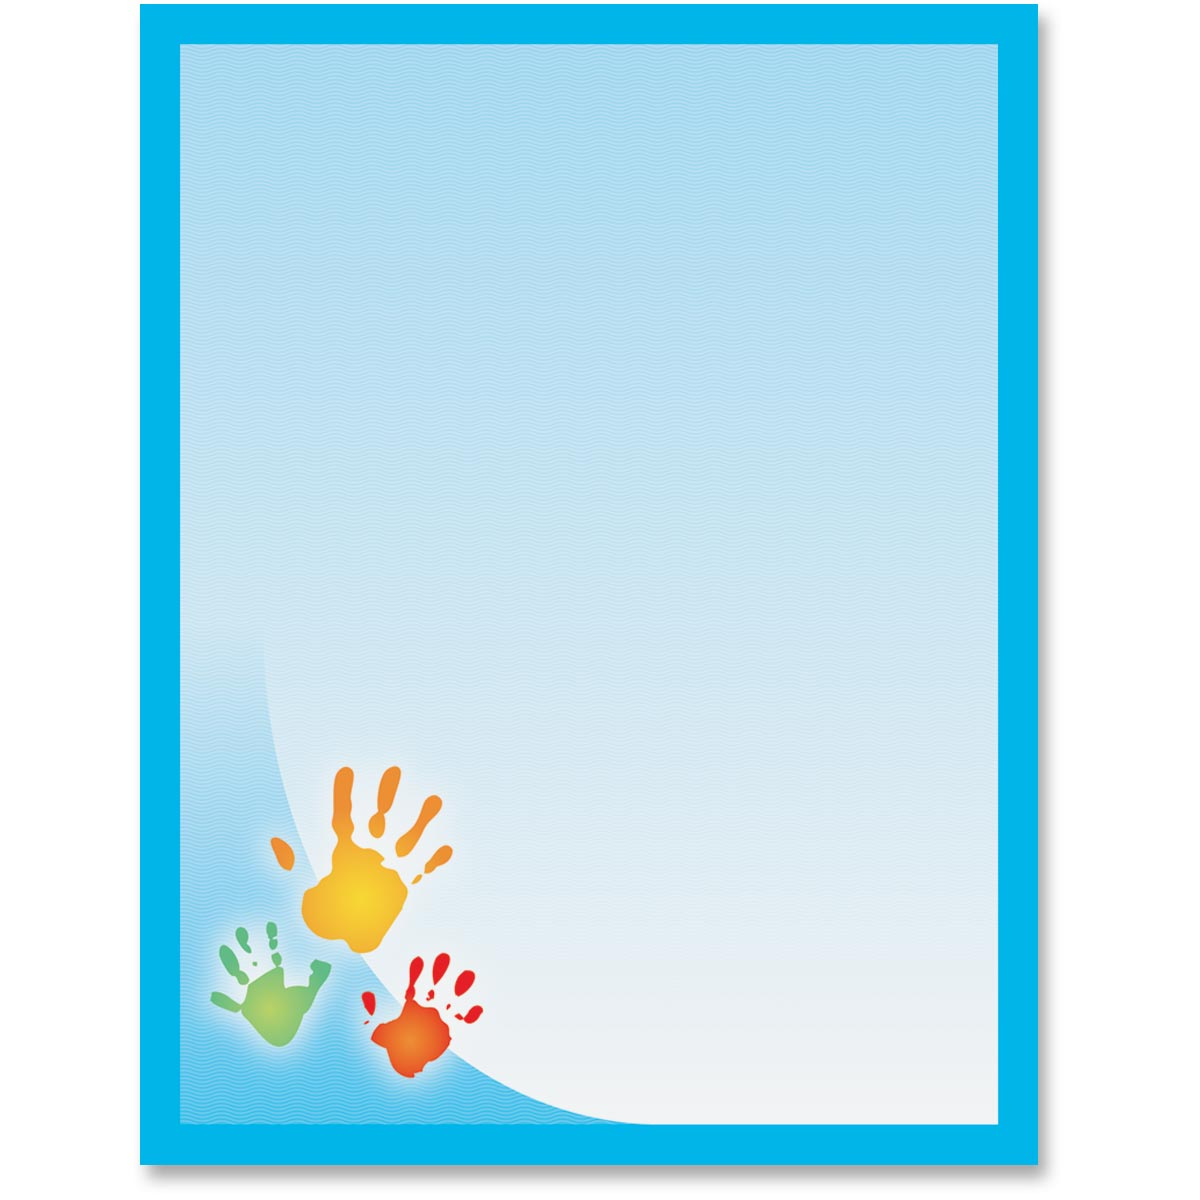 photograph relating to Printable Handprints titled Handprints Printable Papers Andersons